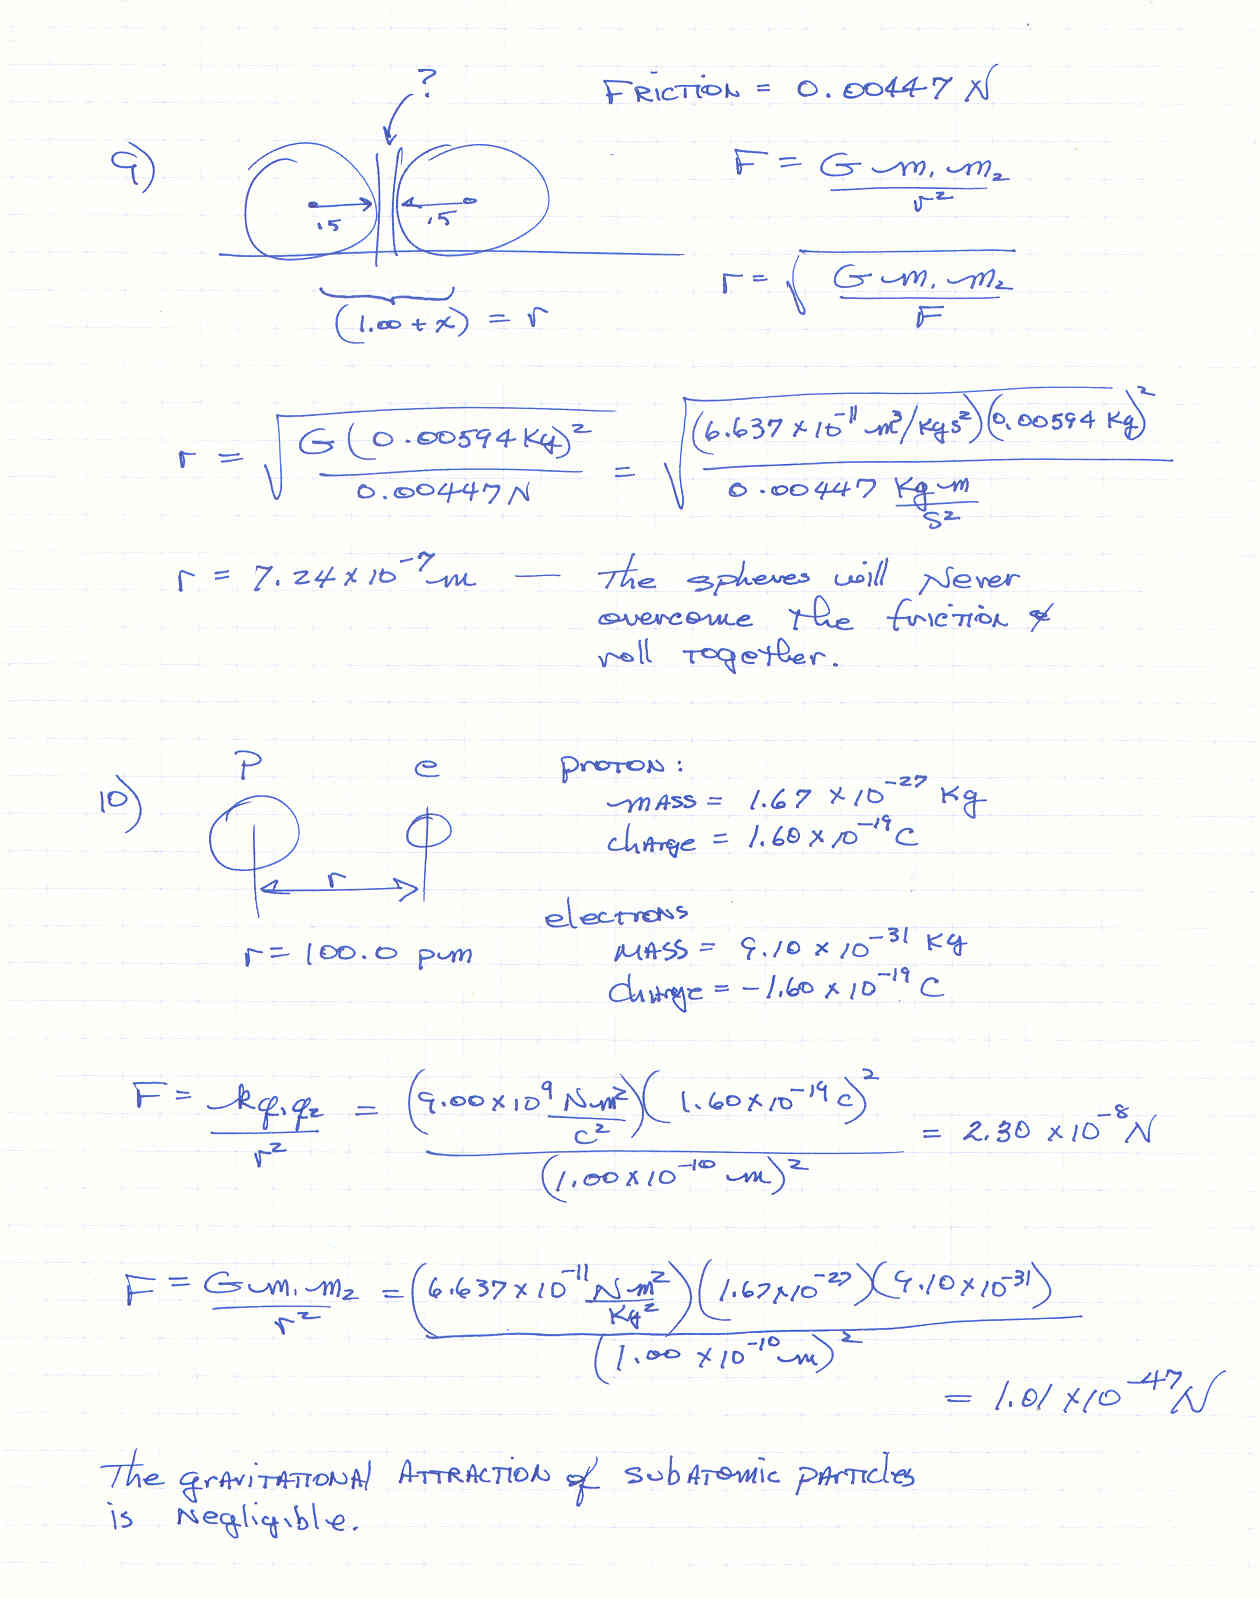 Worksheets Law Of Universal Gravitation Worksheet law of universal gravitation worksheet 1 solution pdf google